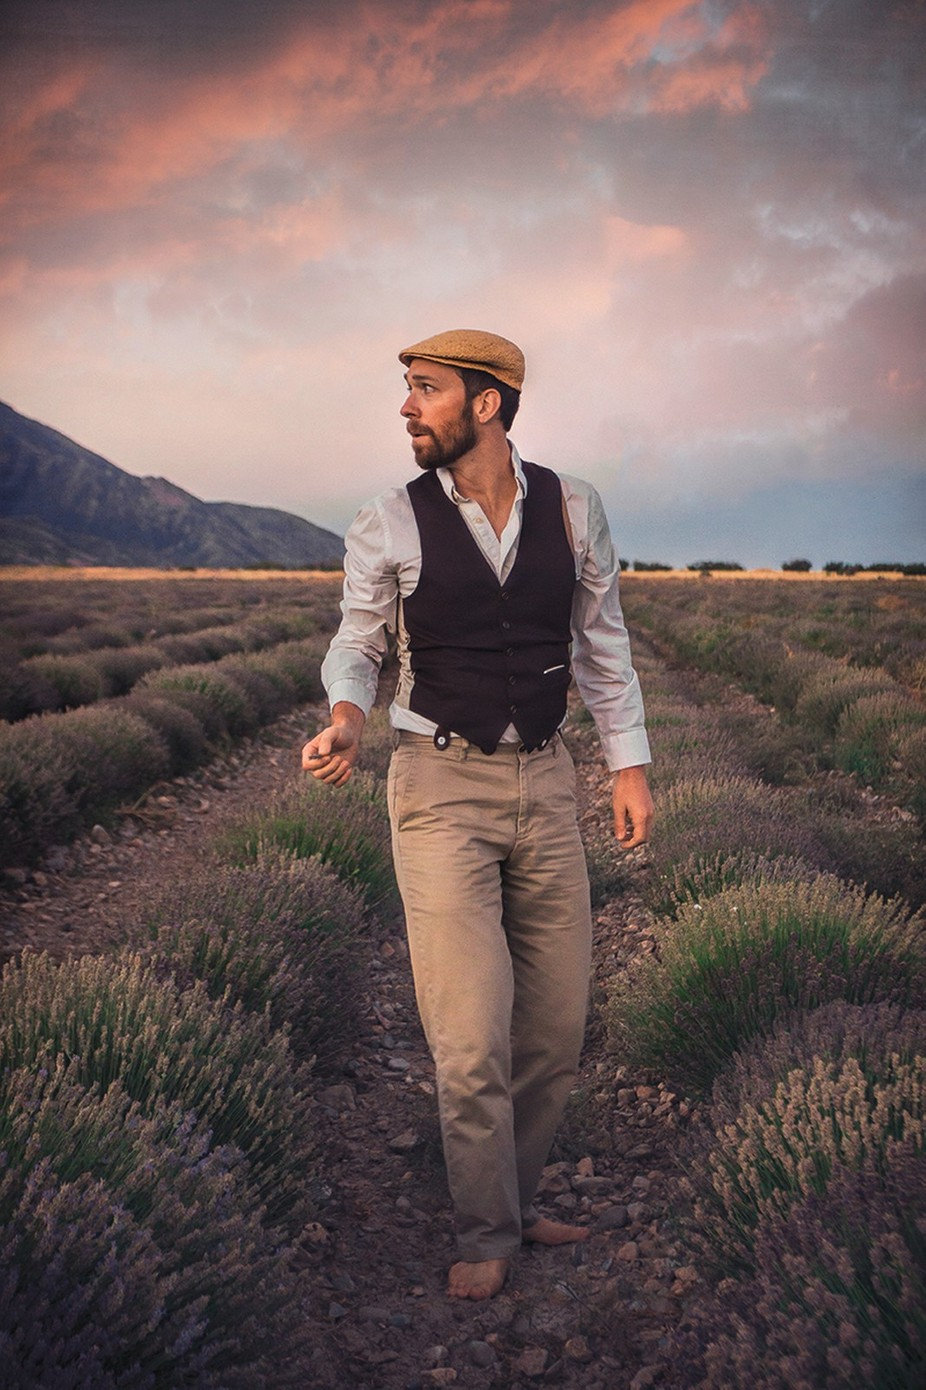 The Lavender Farmer by talynsherer - Environmental Portraits Photo Contest